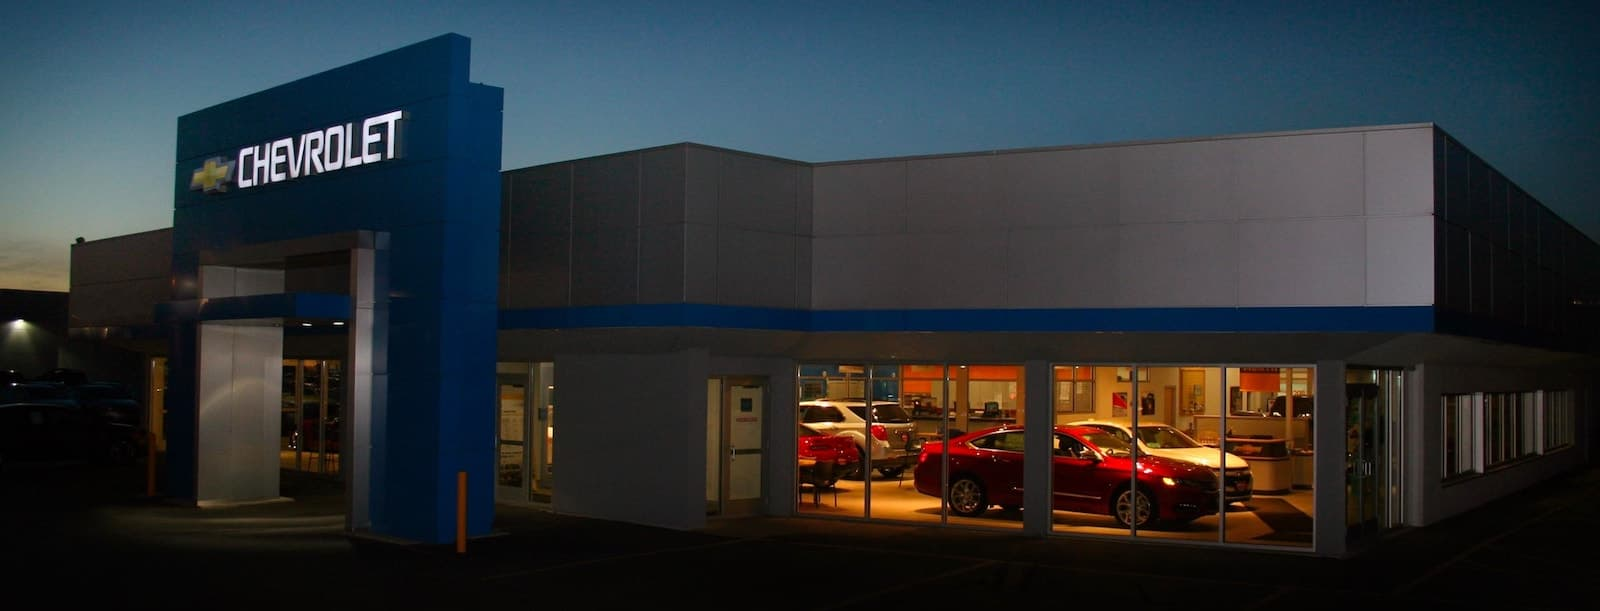 Ralph Sellers Chevrolet Chevrolet Dealer In Baton Rouge La